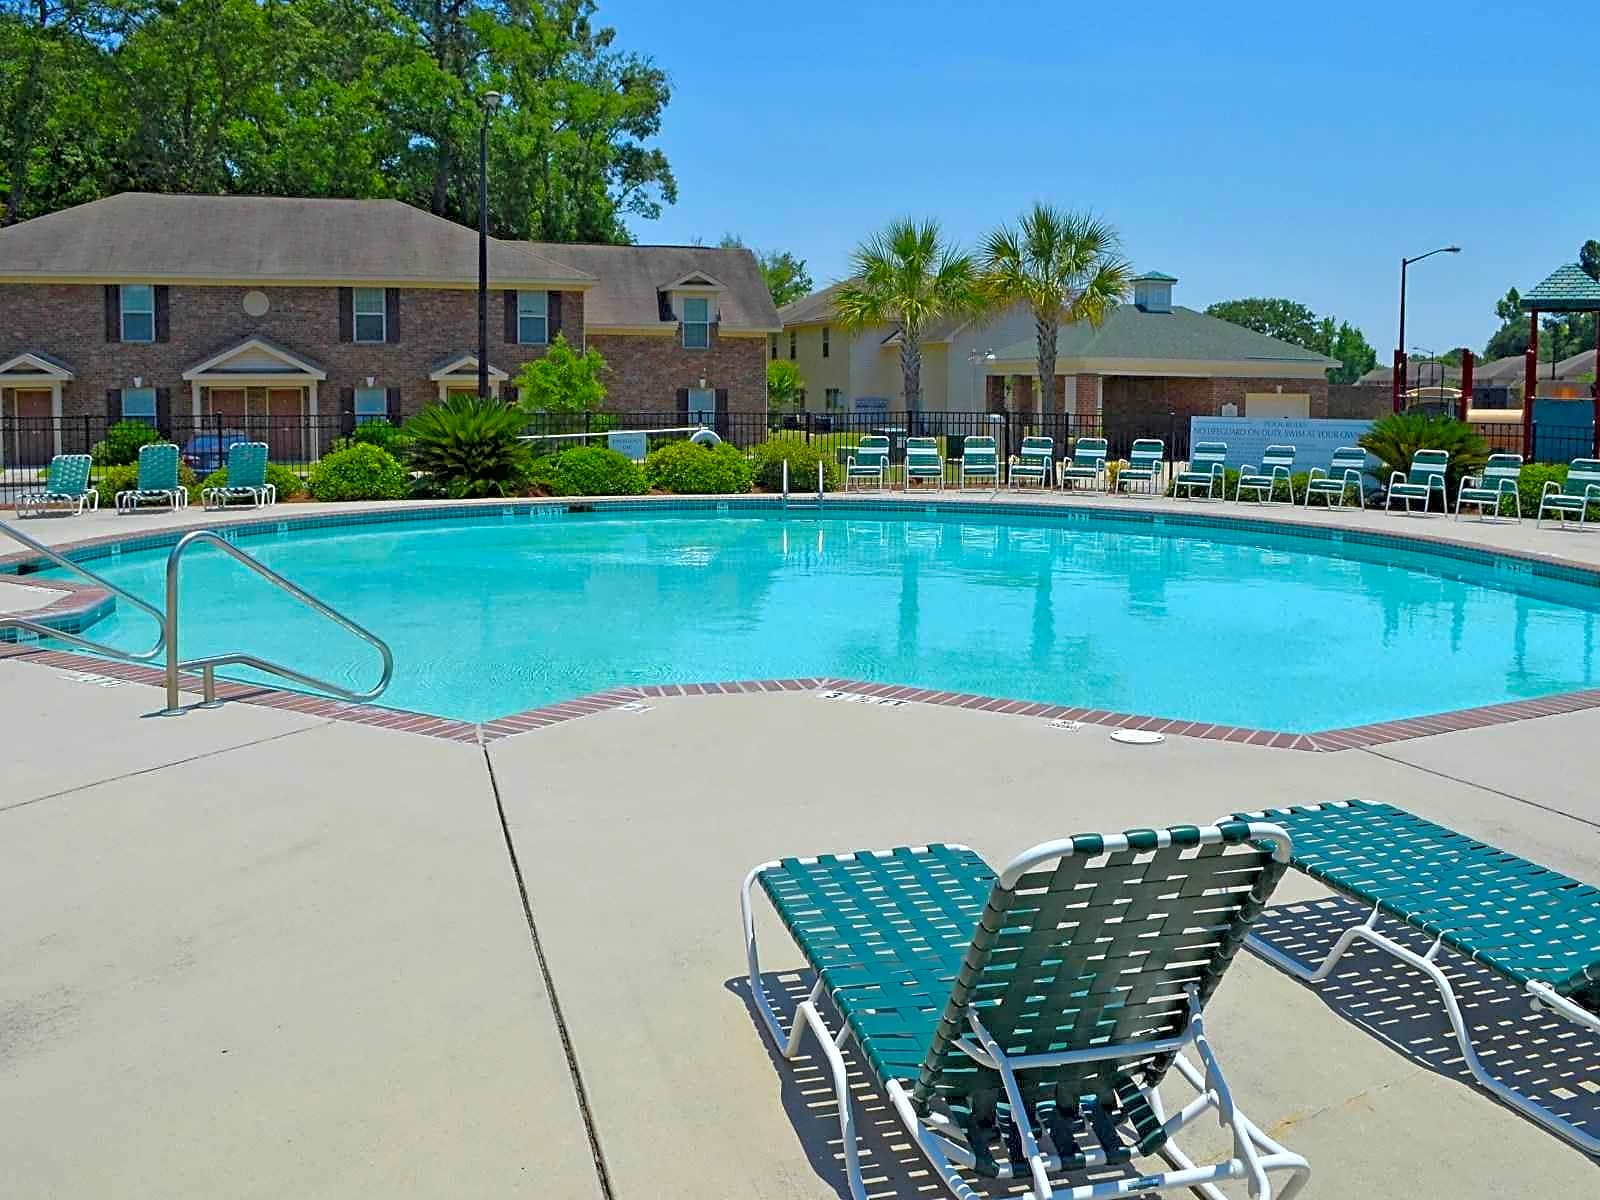 garden lake townhomes apartments garden city ga 31408 87920